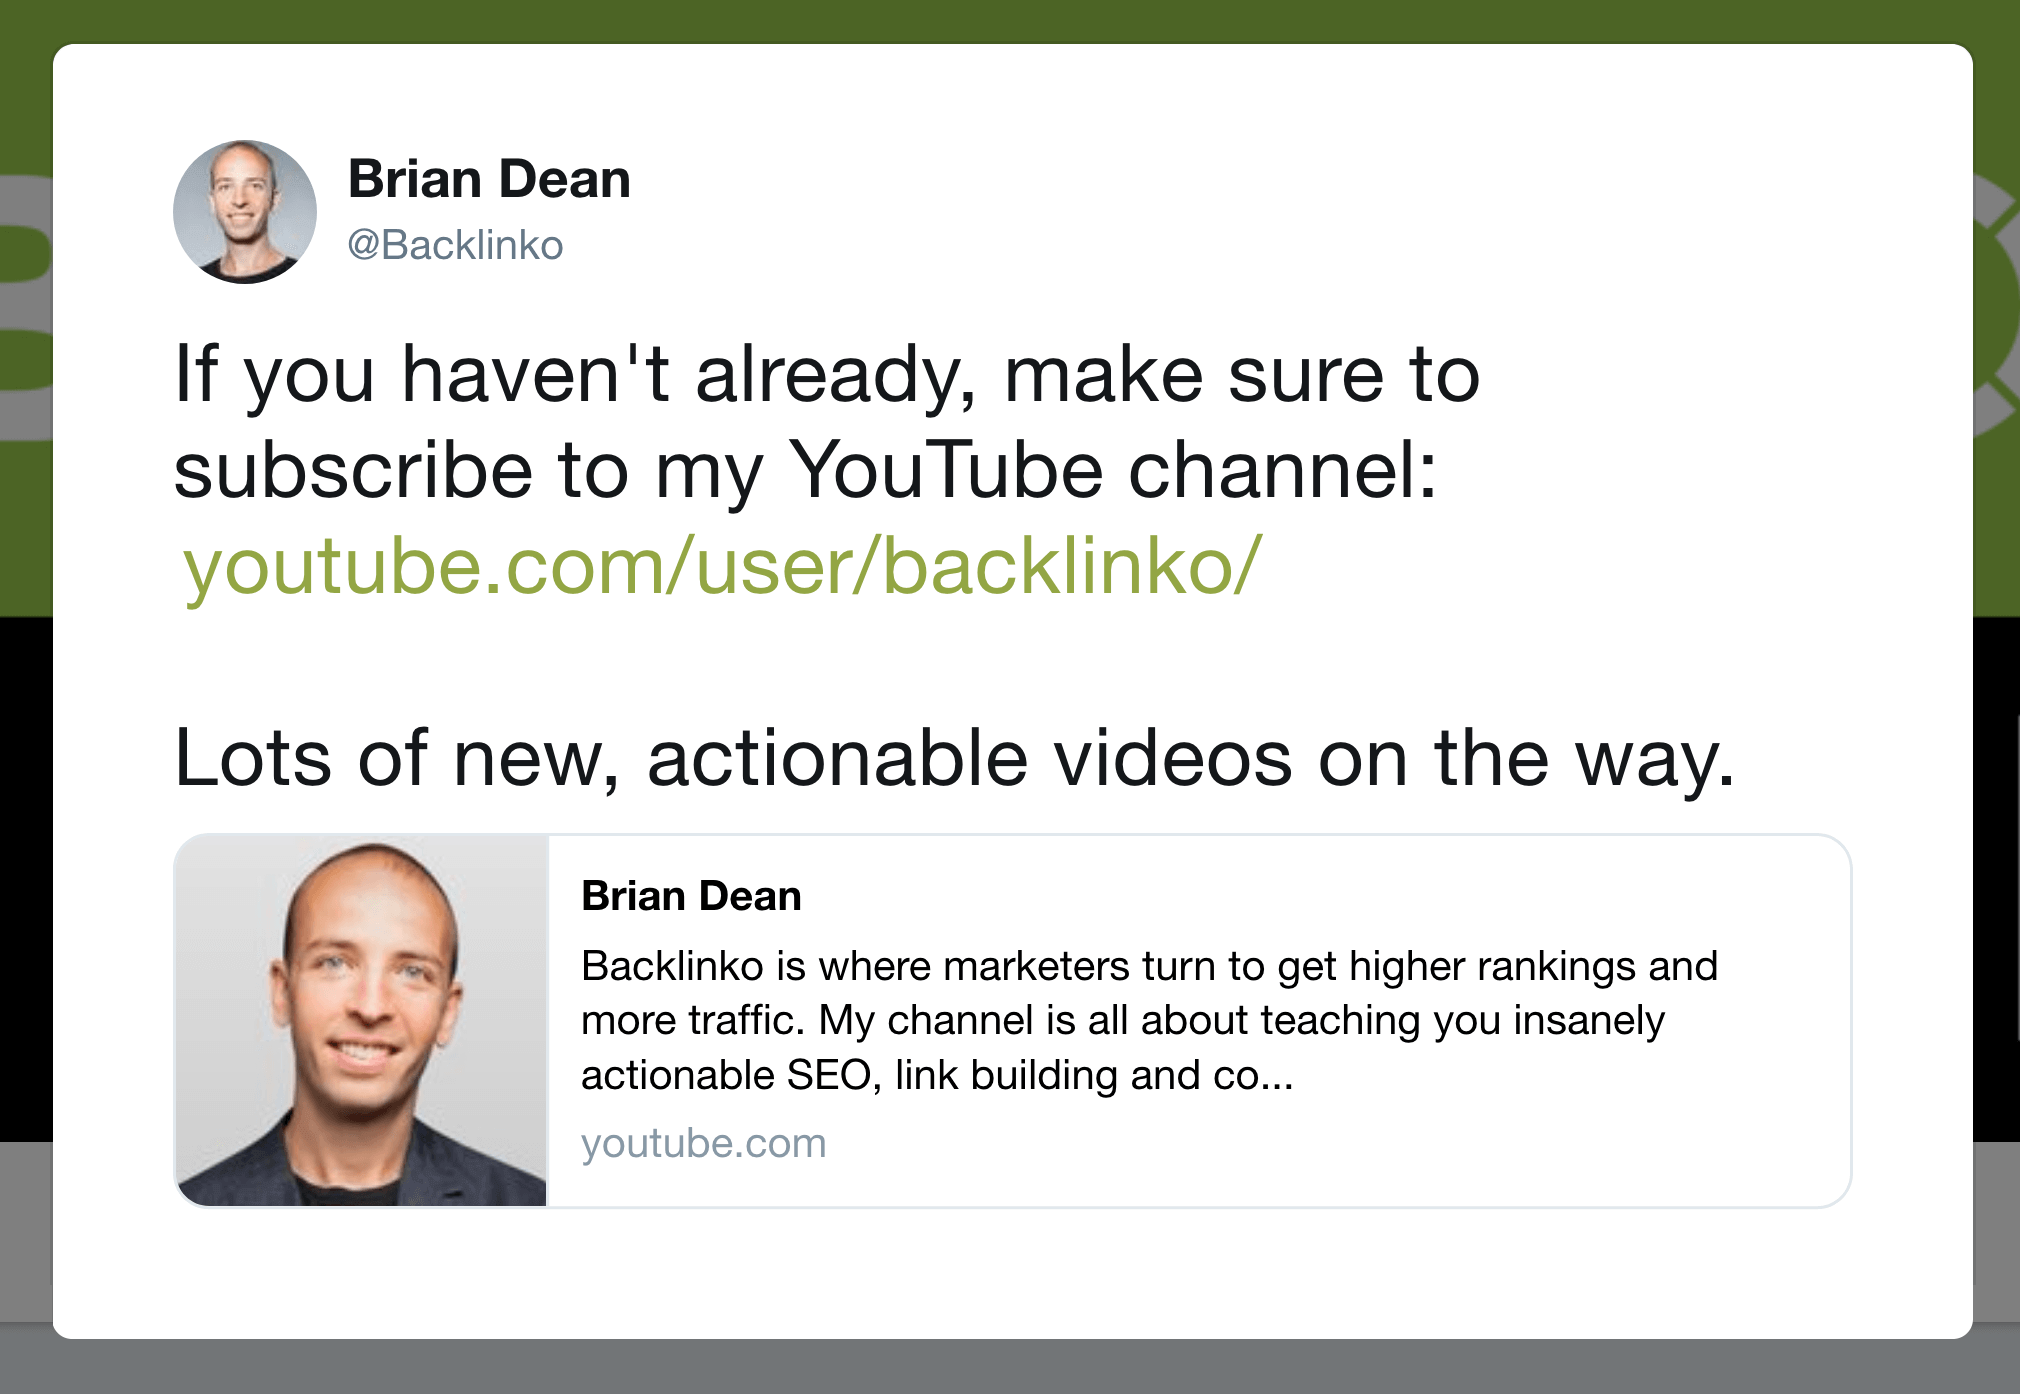 Ask for subscription